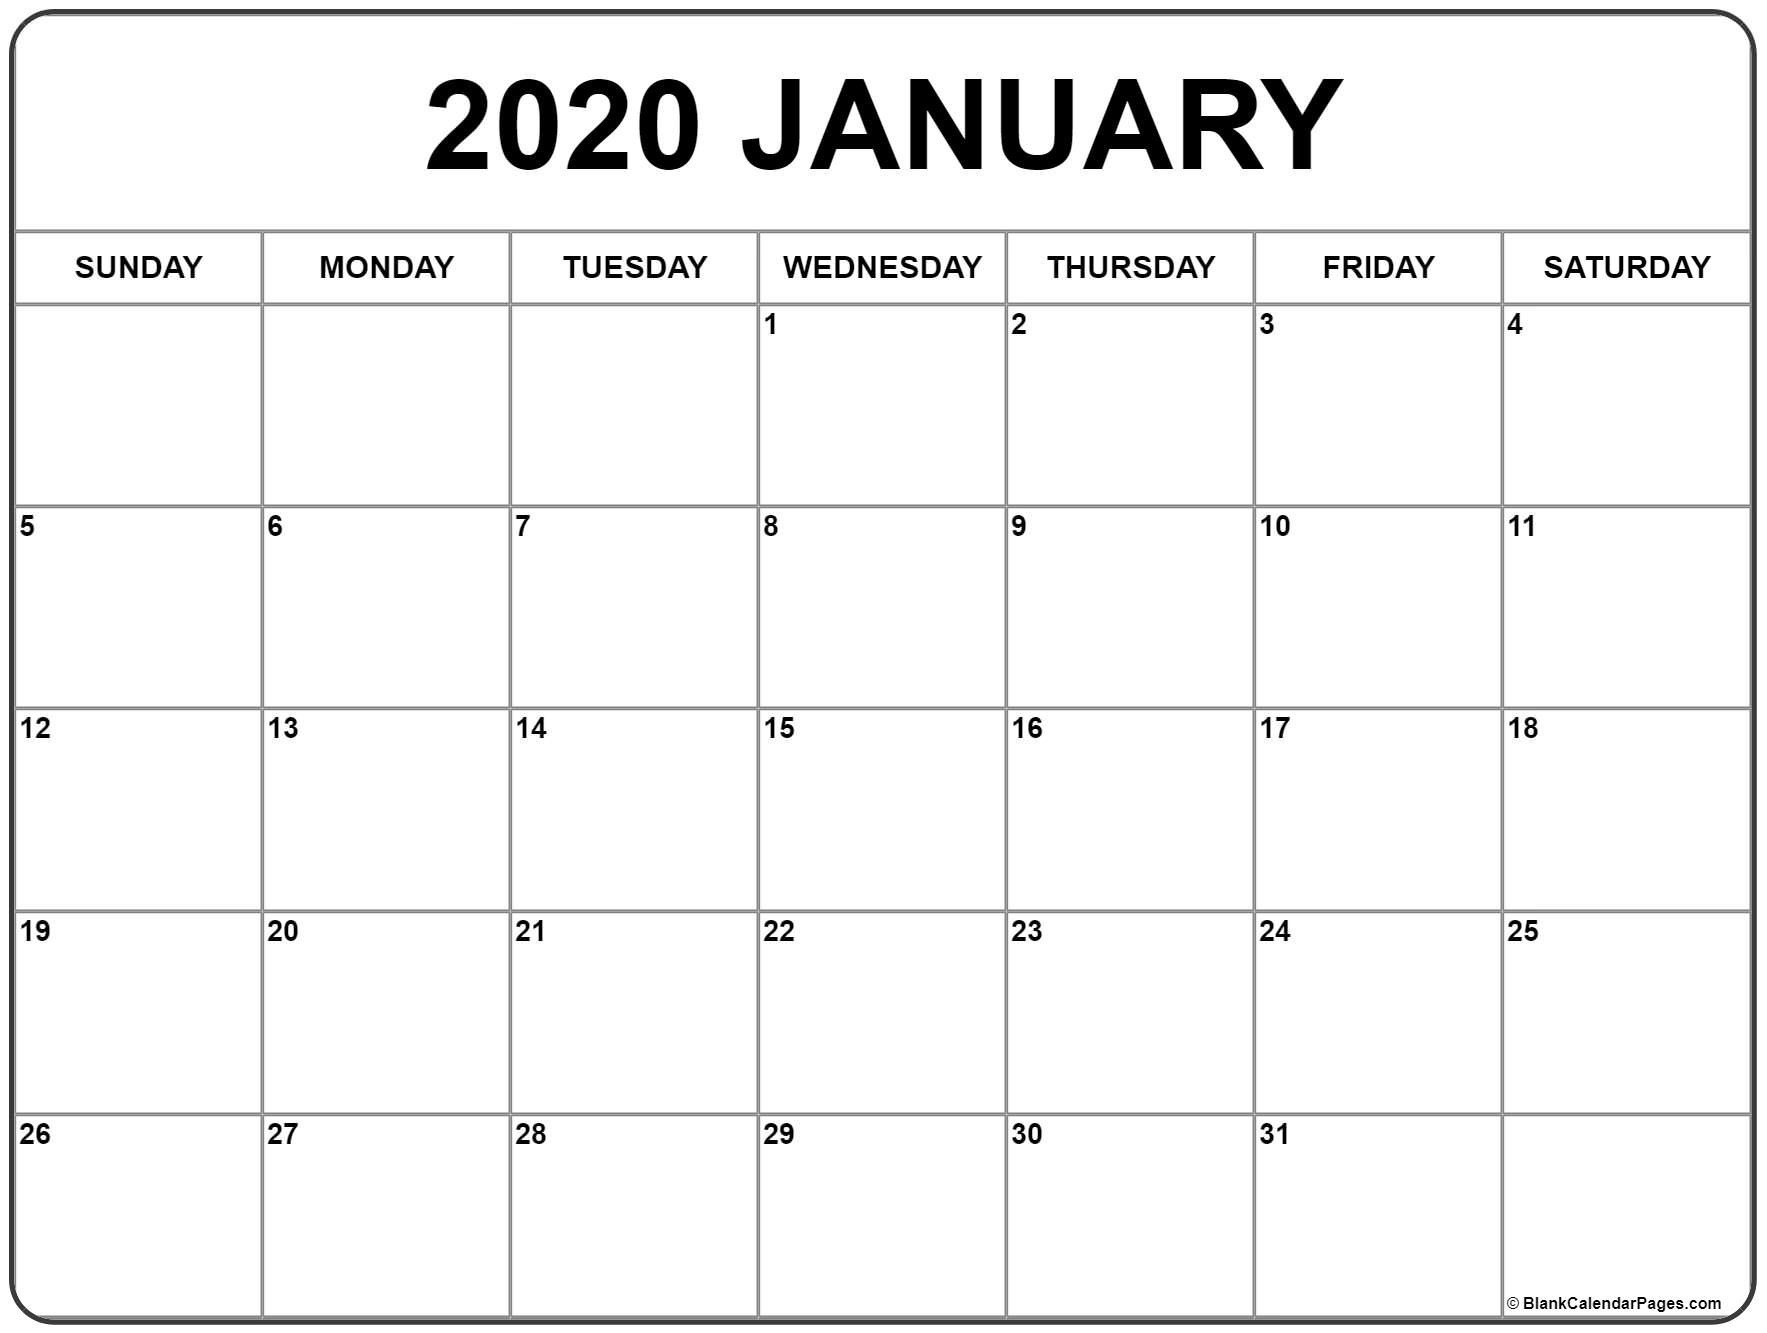 January 2020 Calendar | Free Printable Monthly Calendars intended for 2020 Free Monthly Calendars To Print